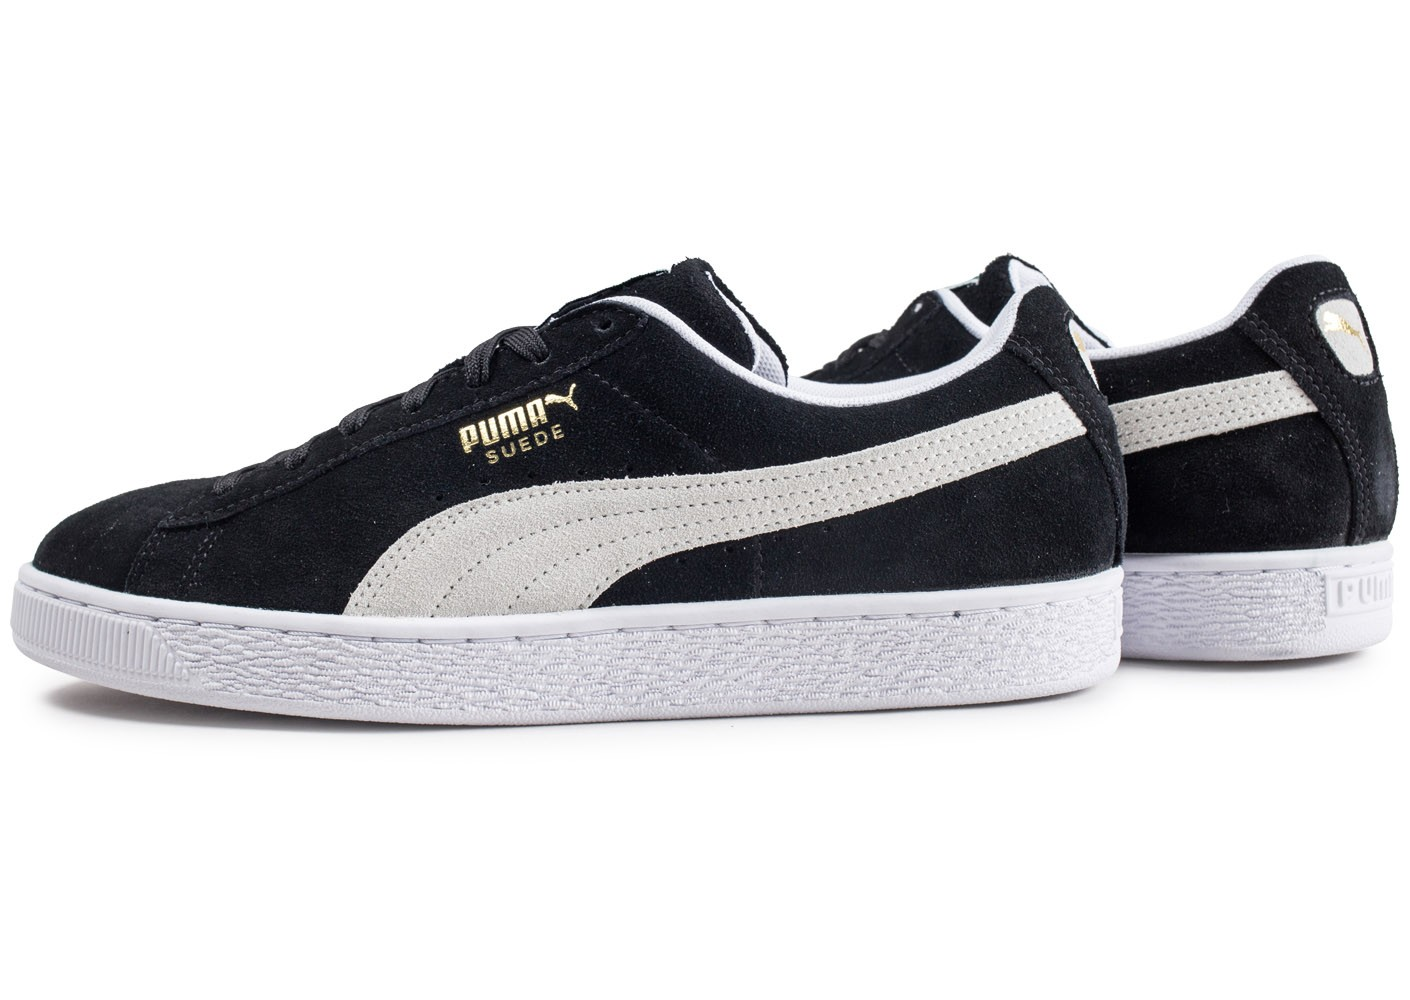 Puma Suede Classic Rouge Chaussures Baskets homme Chausport